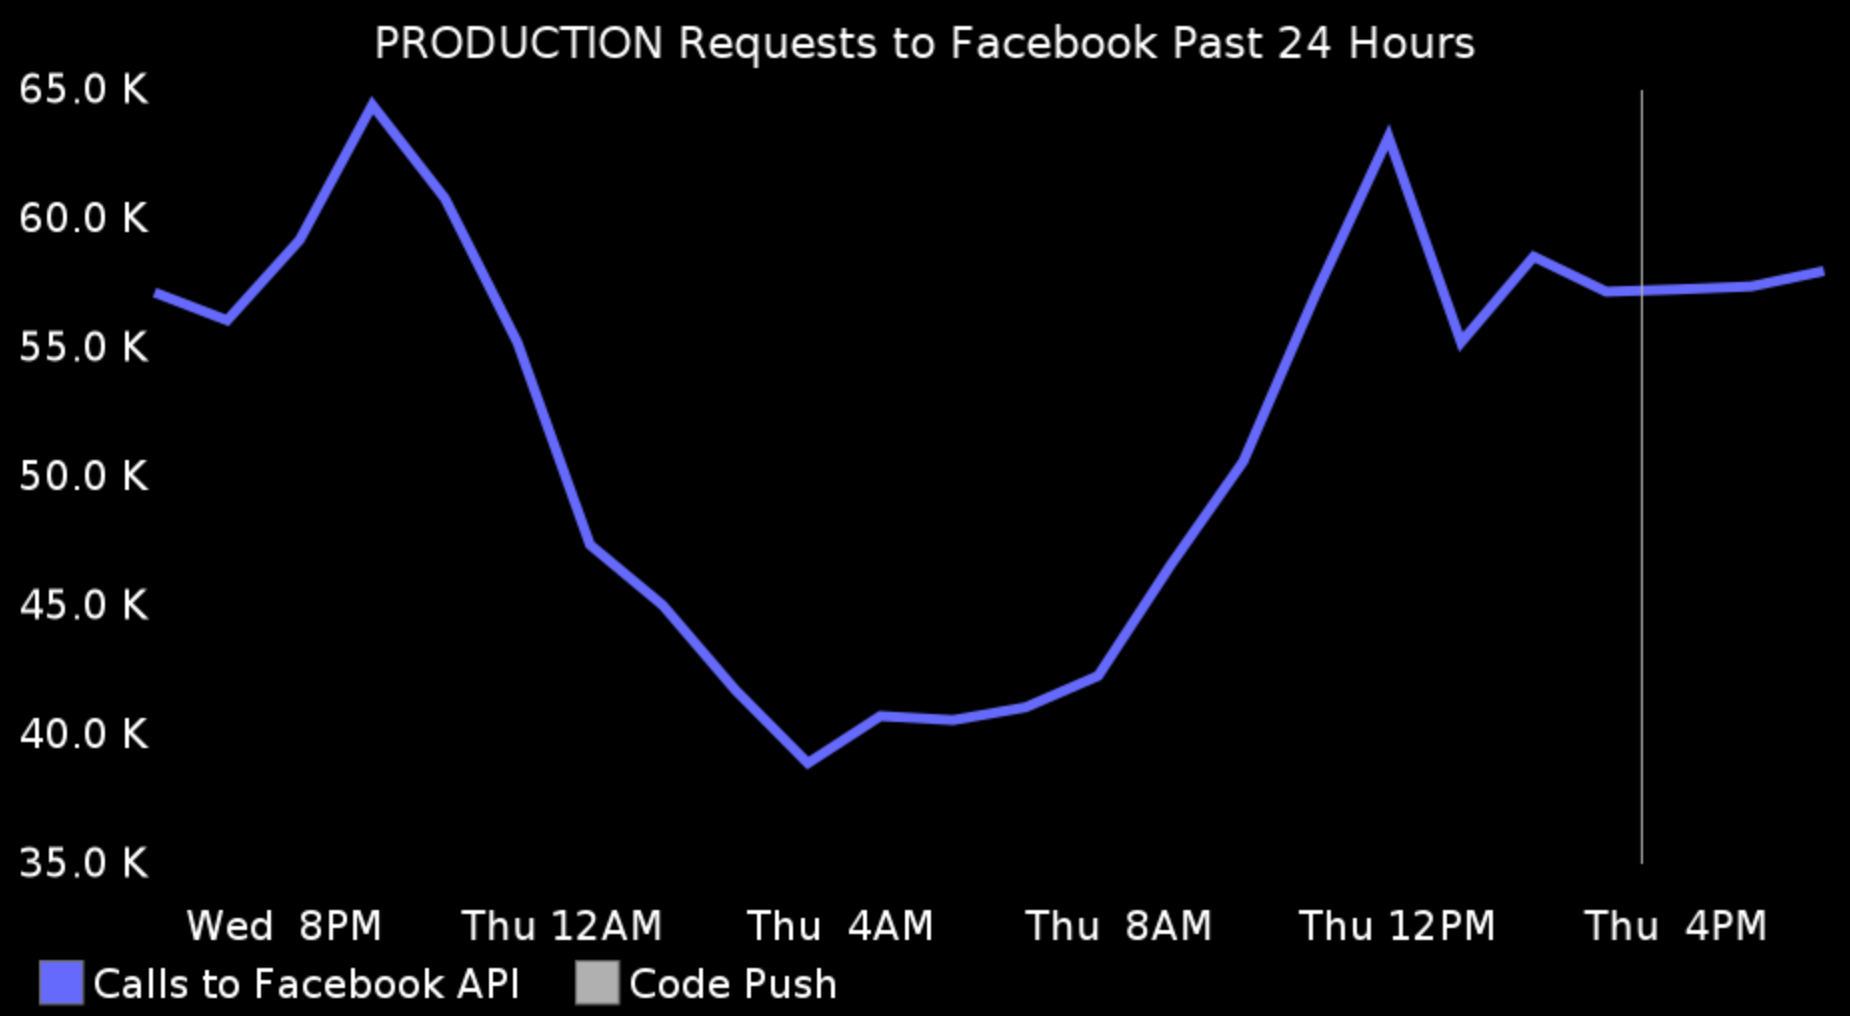 No one is posting on Facebook around 4am.